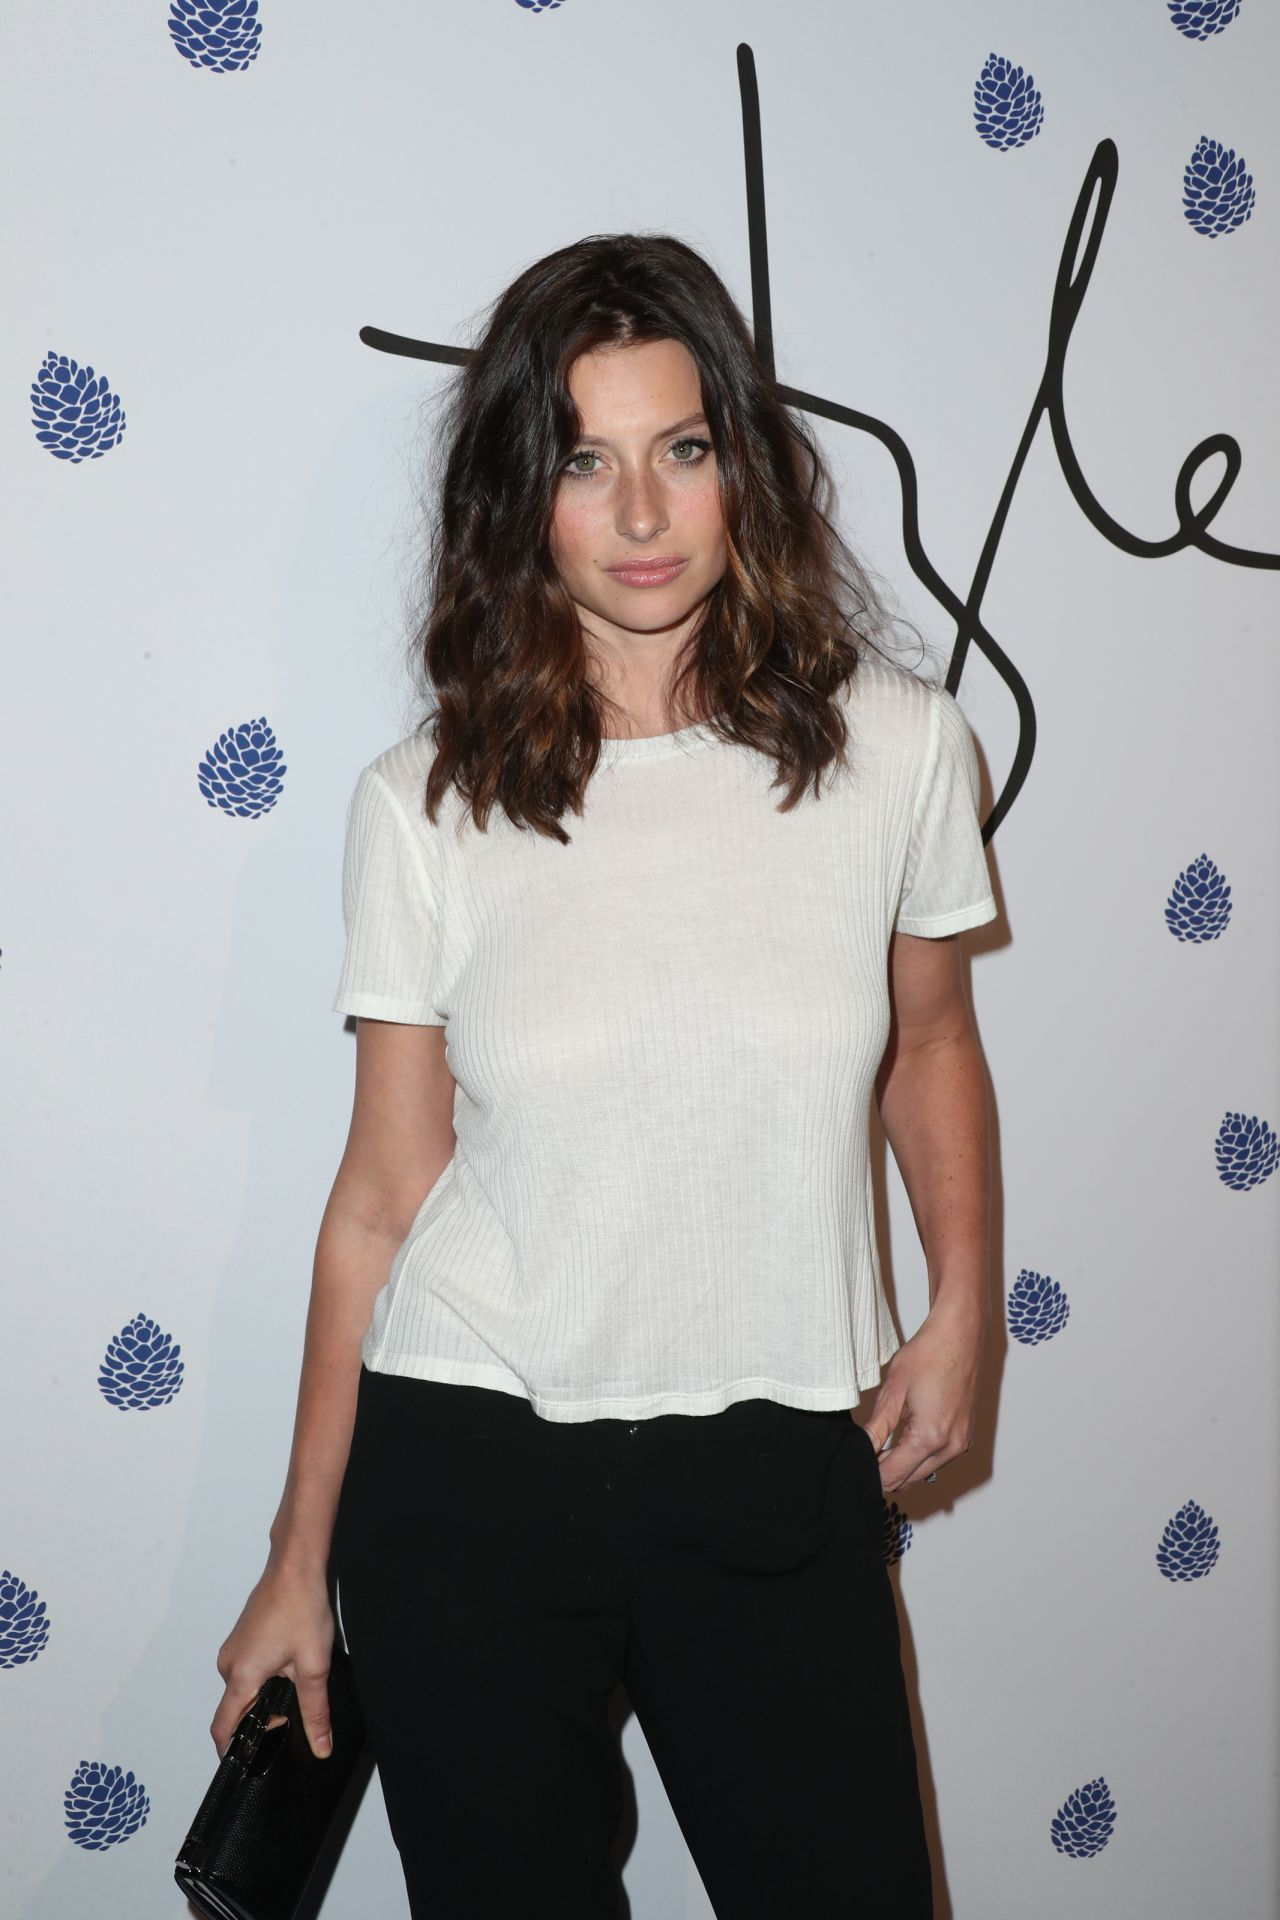 Alyson Aly Michalka Latest Photos - CelebMafia